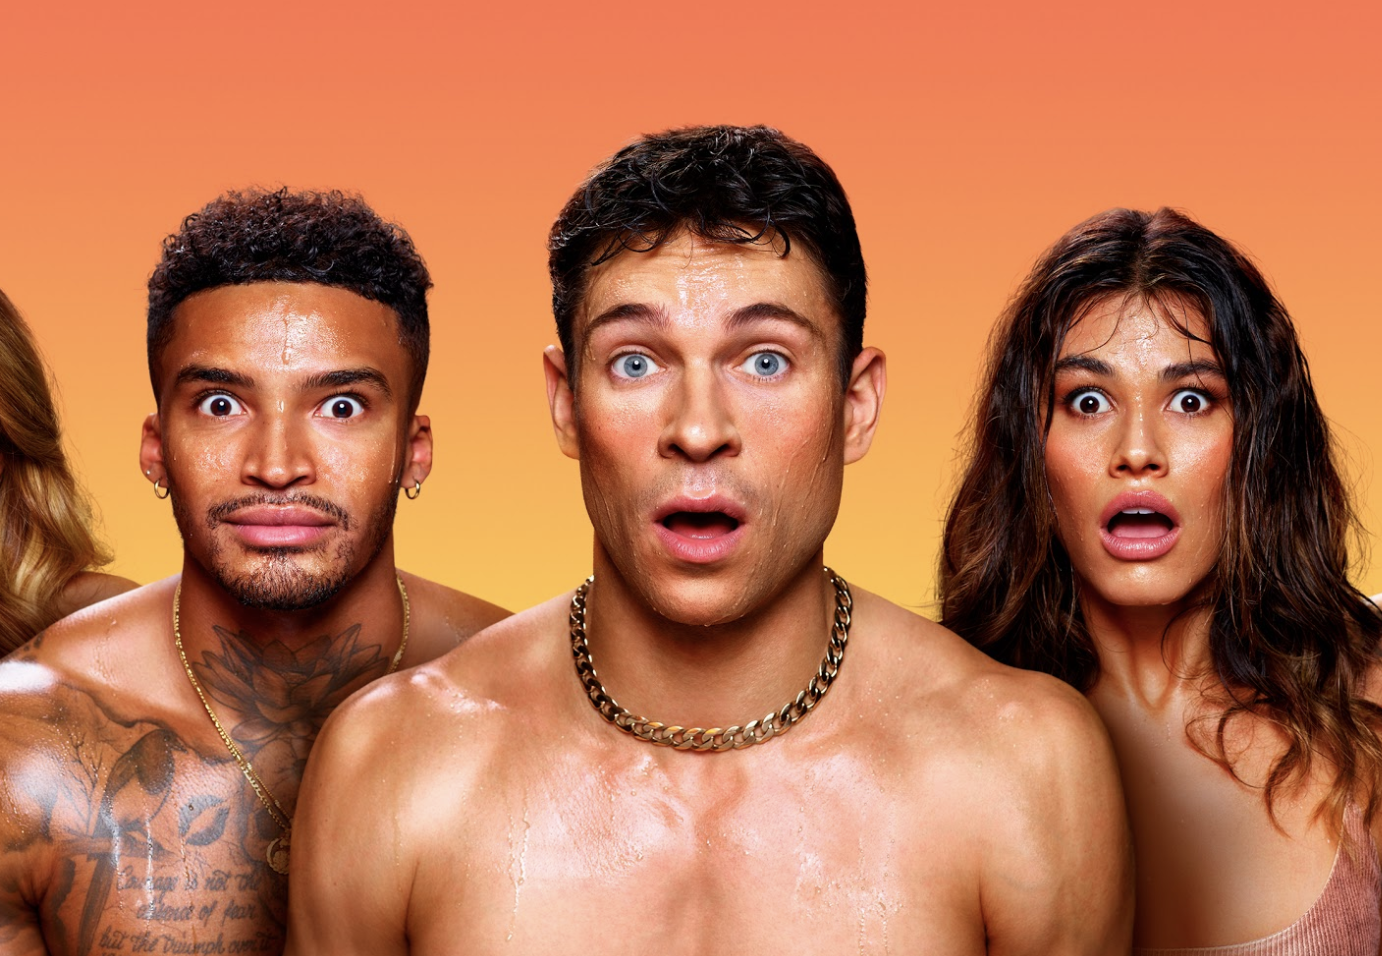 Celebrity Ex on the Beach stars have unexpected geography debate – but they're both wrong